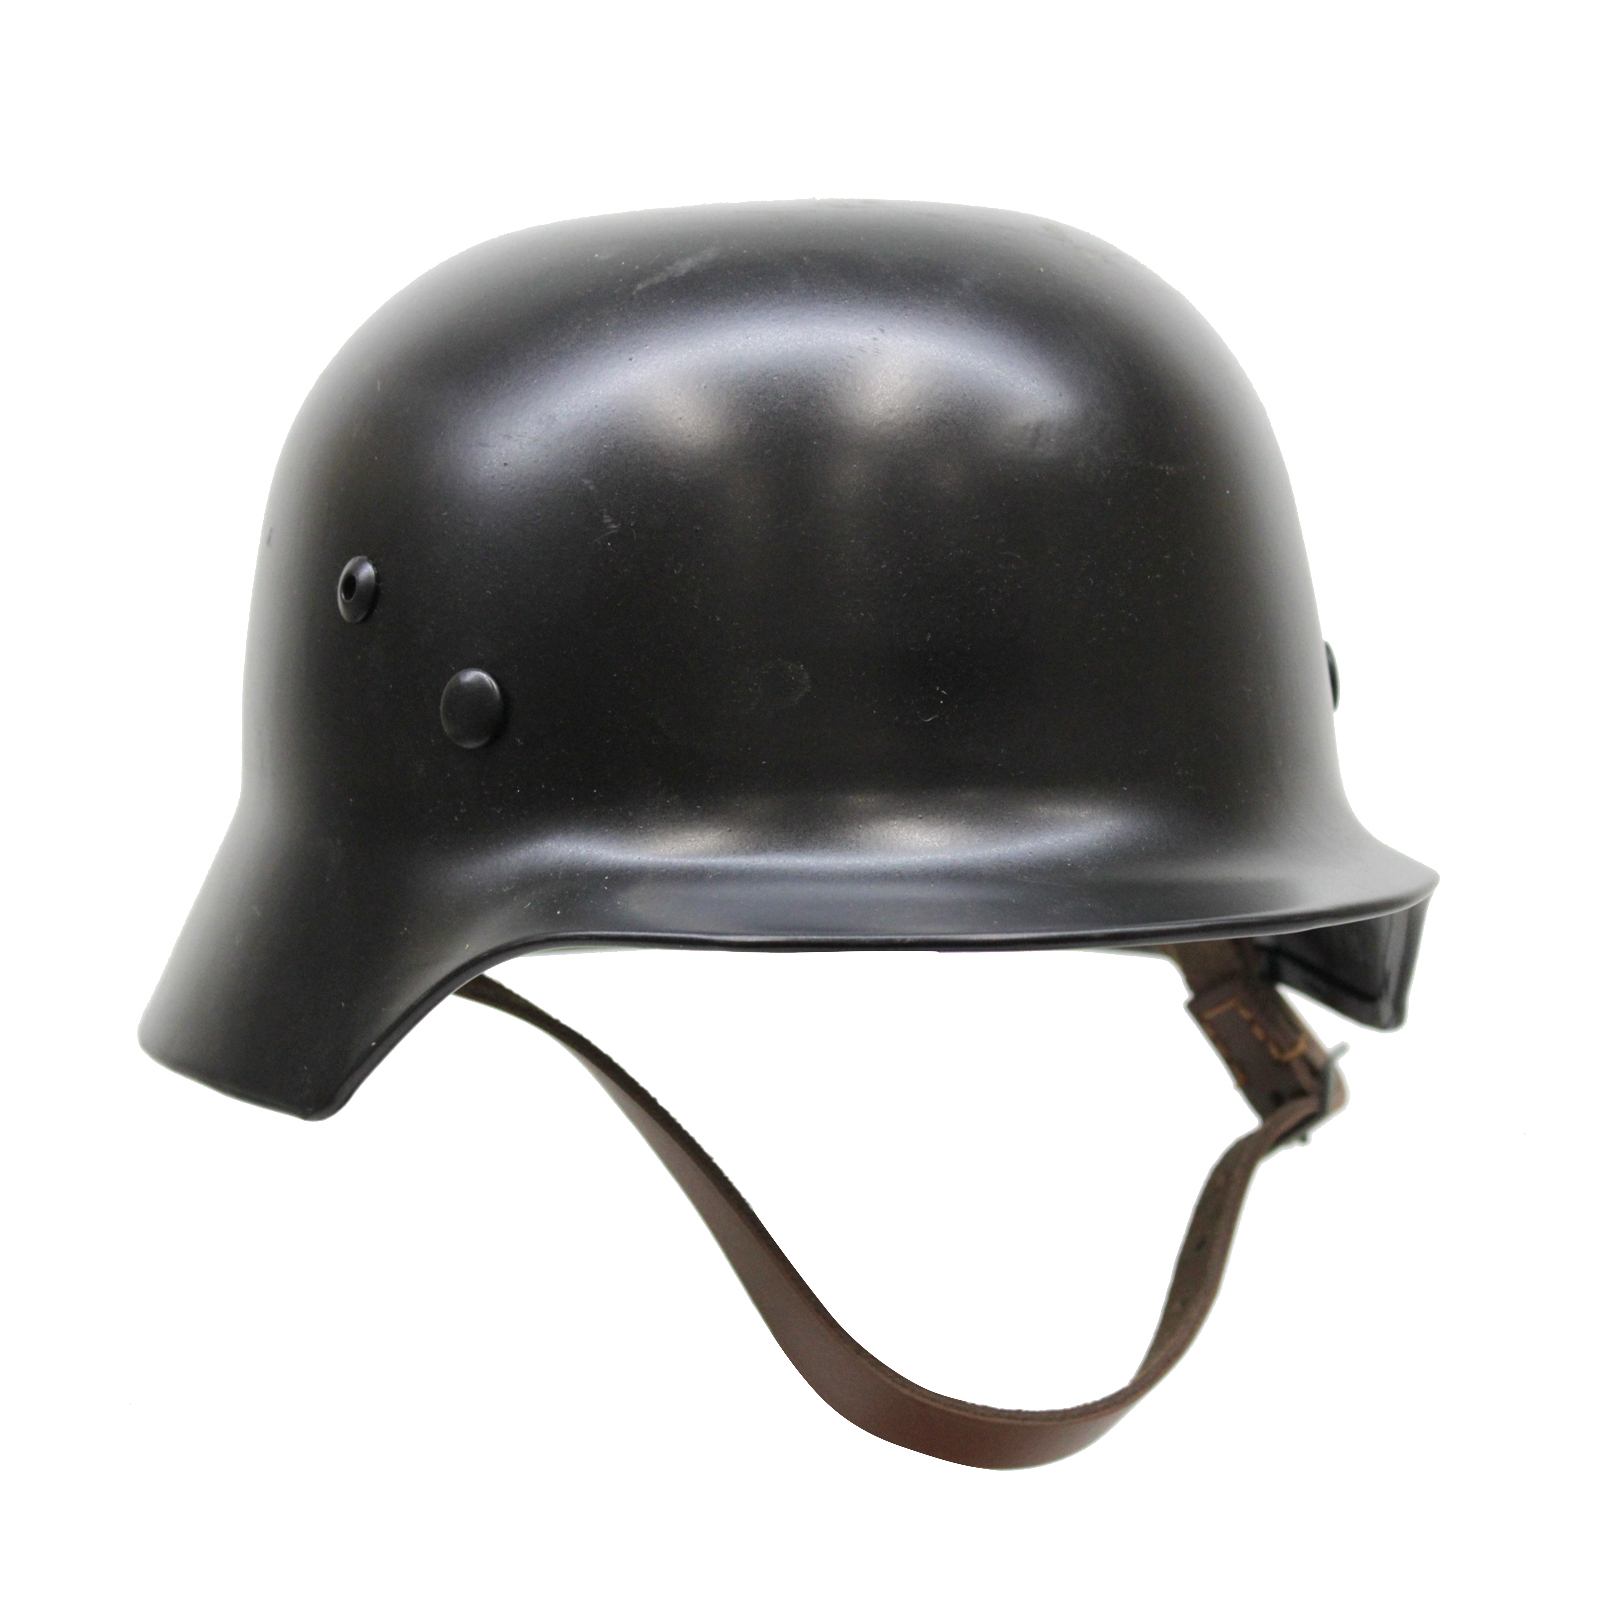 REPLICA German Stahlhelm Helmet.